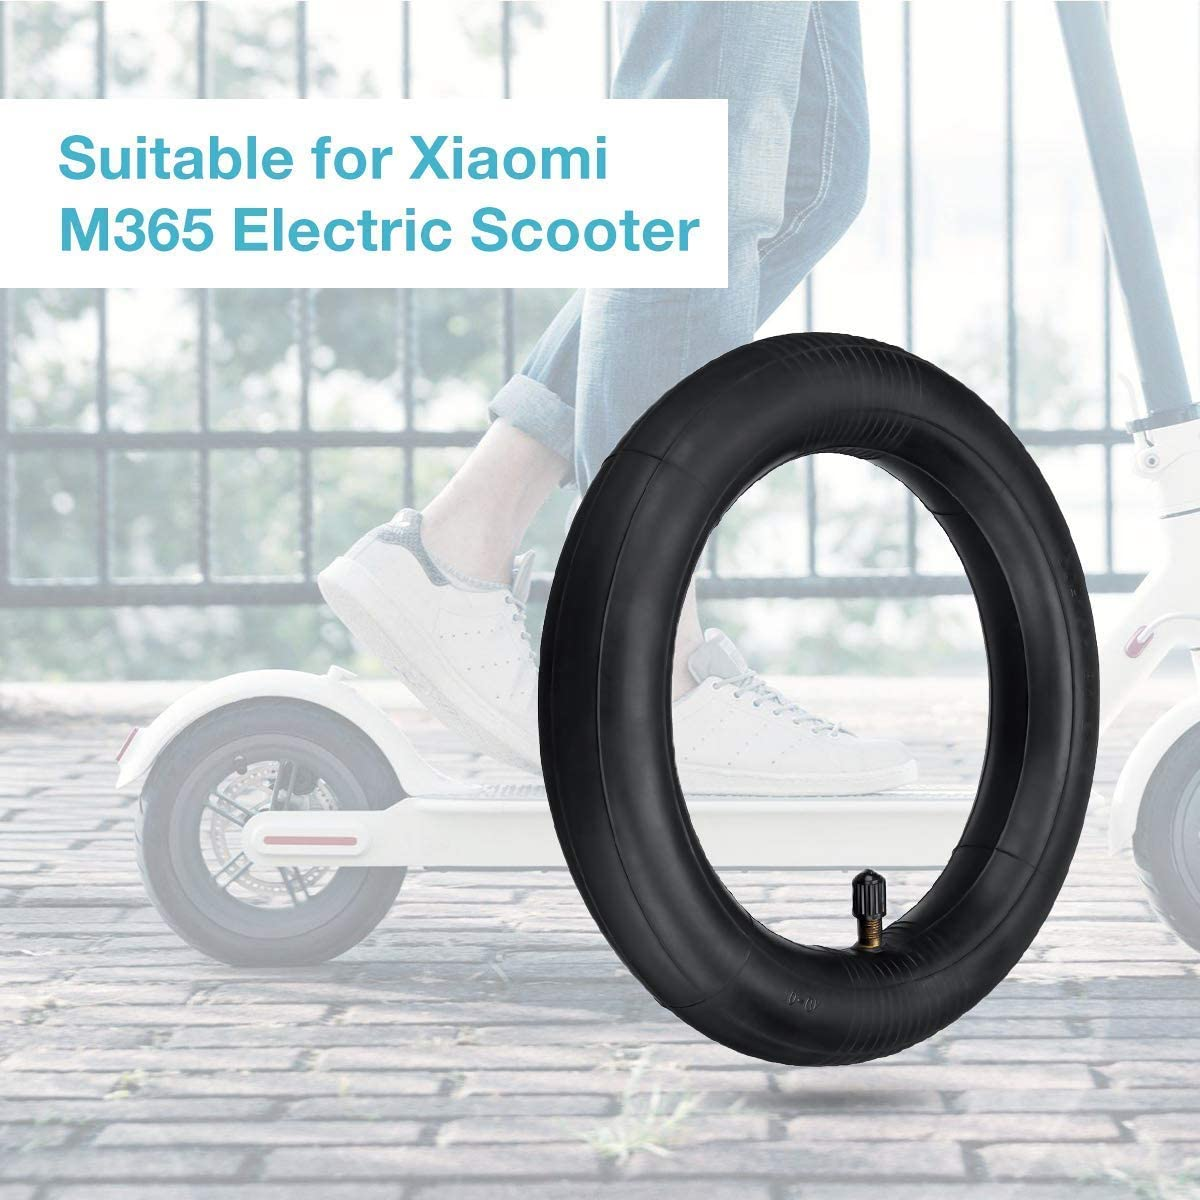 Solid Electric Scooter Wheels//Explosion Gotrax GXL v2,Swagtro Scooter Fit All 8.5 inch Electric Scooter Wheels Replacement Kutrick Electric Scooter Solid Tire Replacement for XiaoMi Mijia M365